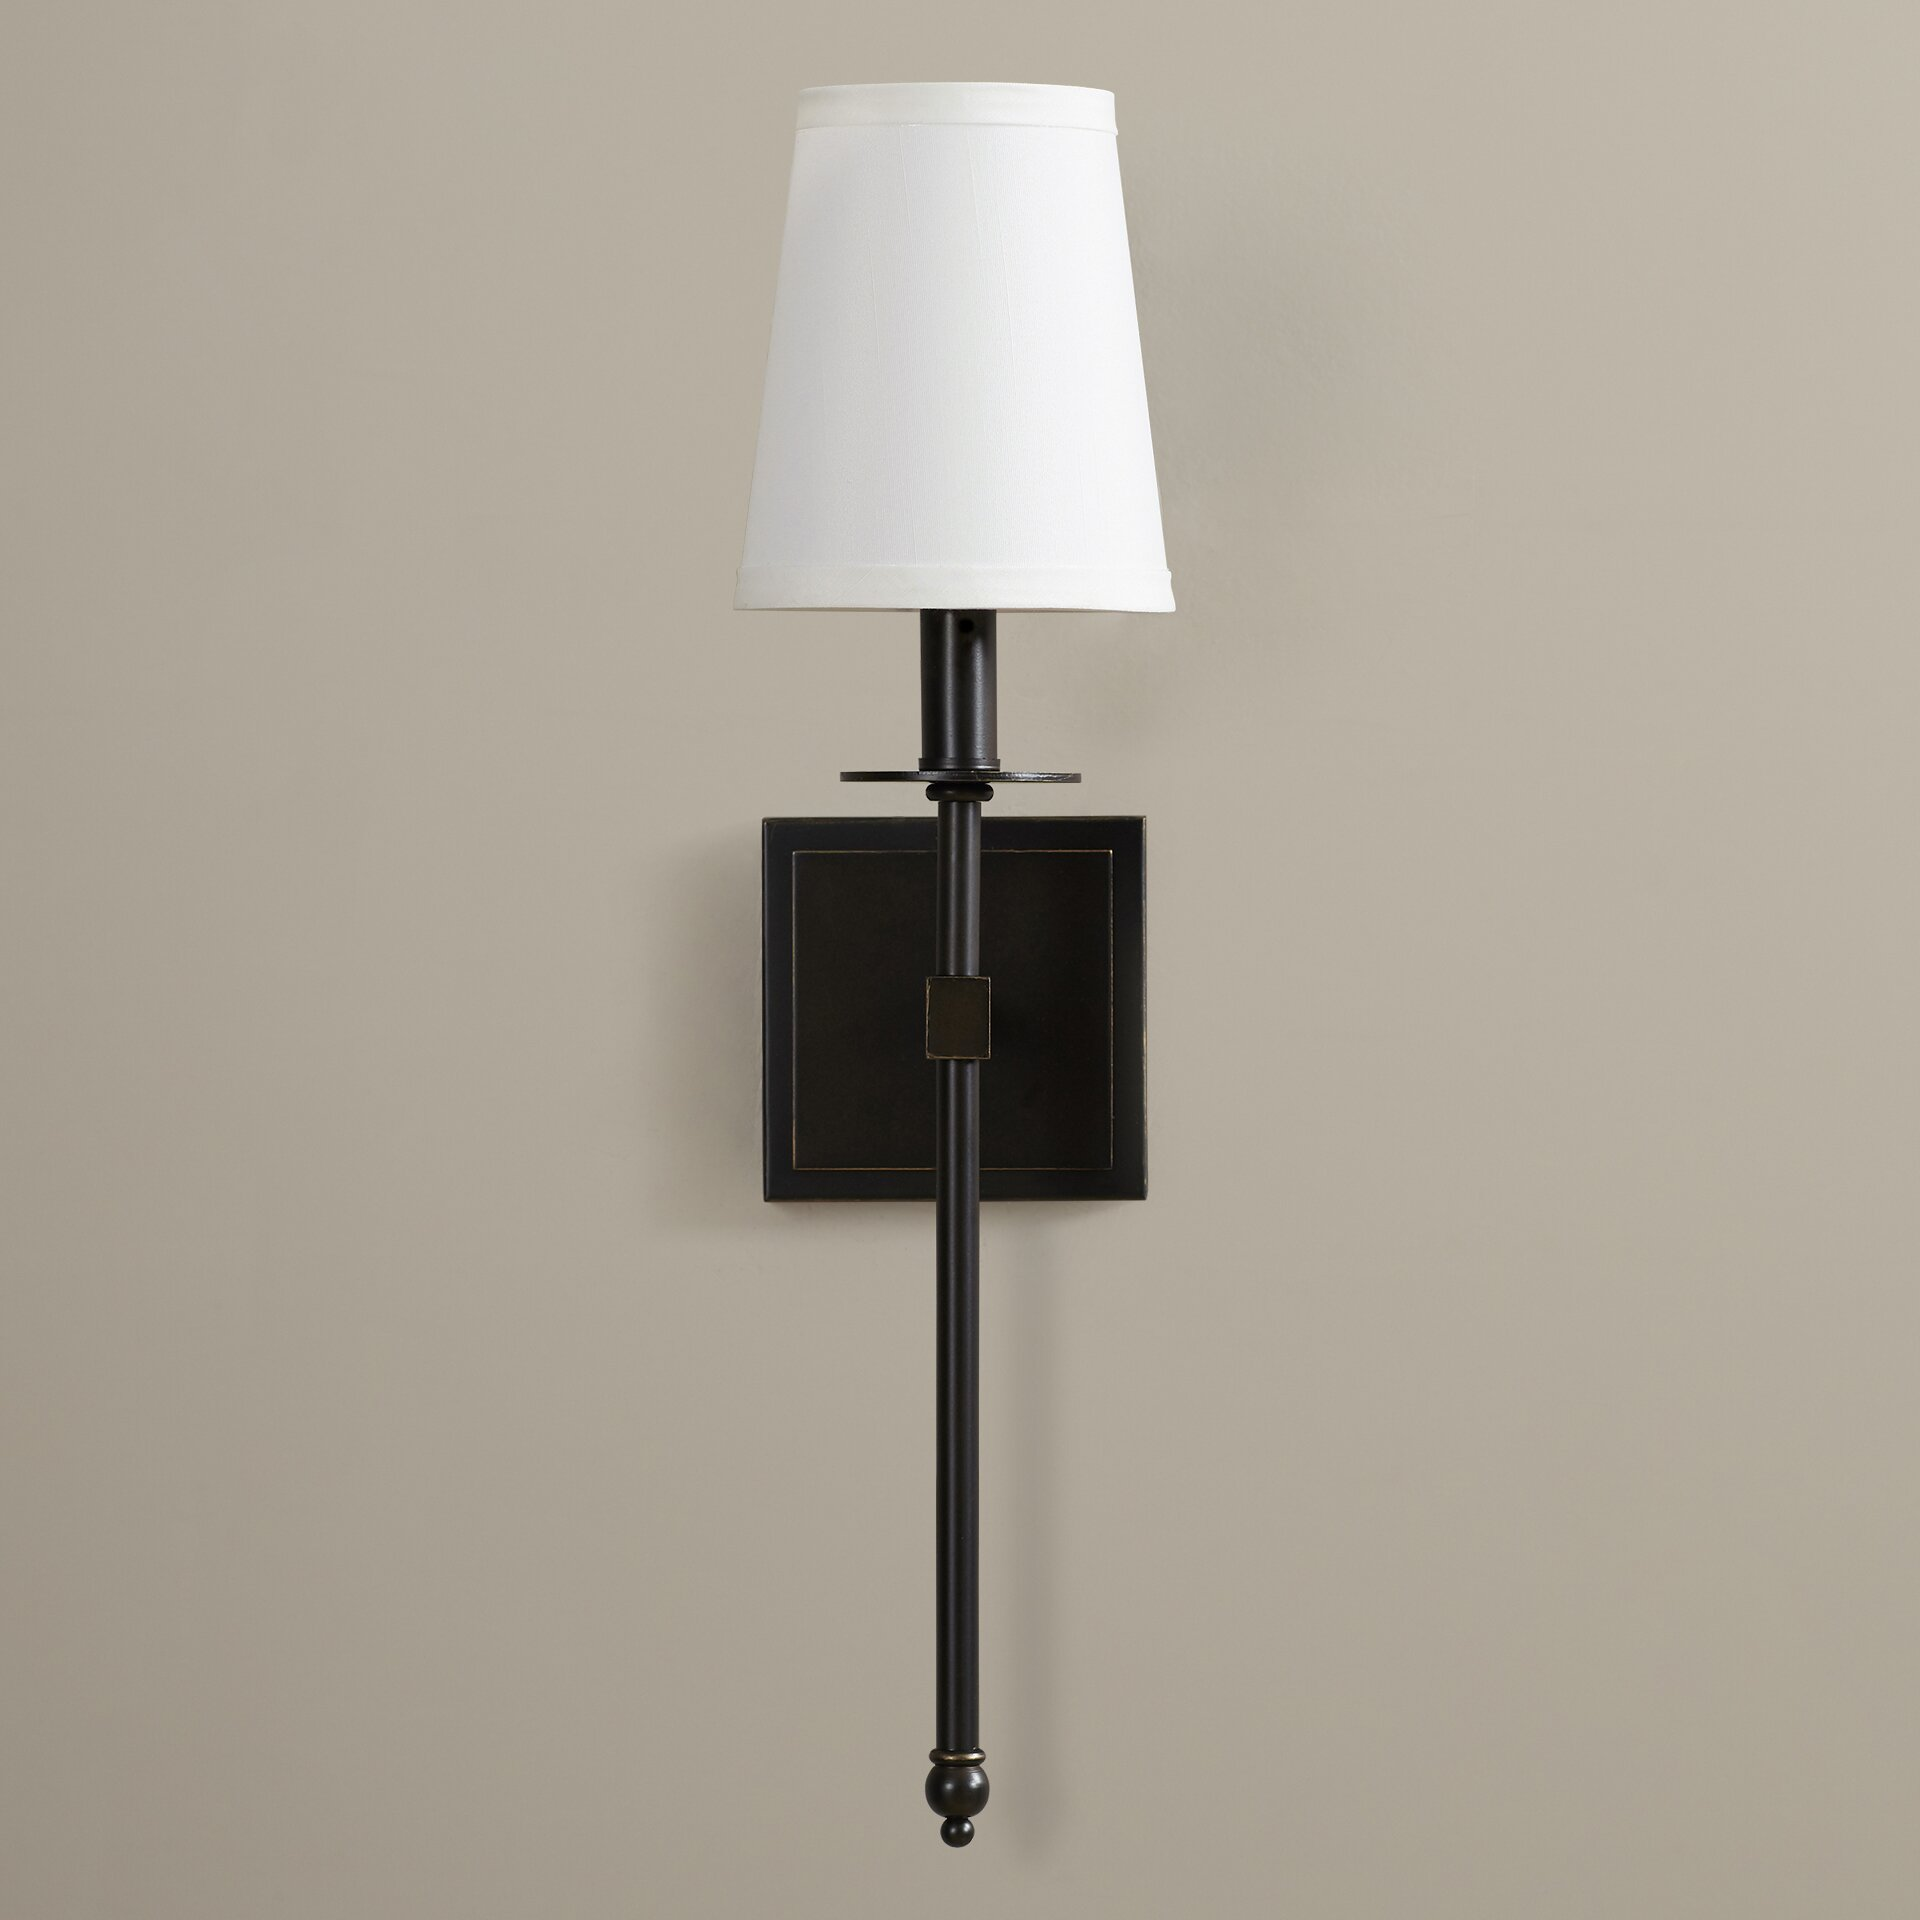 Wall Sconces Cooper Lighting : Three Posts Cooperstown 1 Light Wall Sconce & Reviews Wayfair